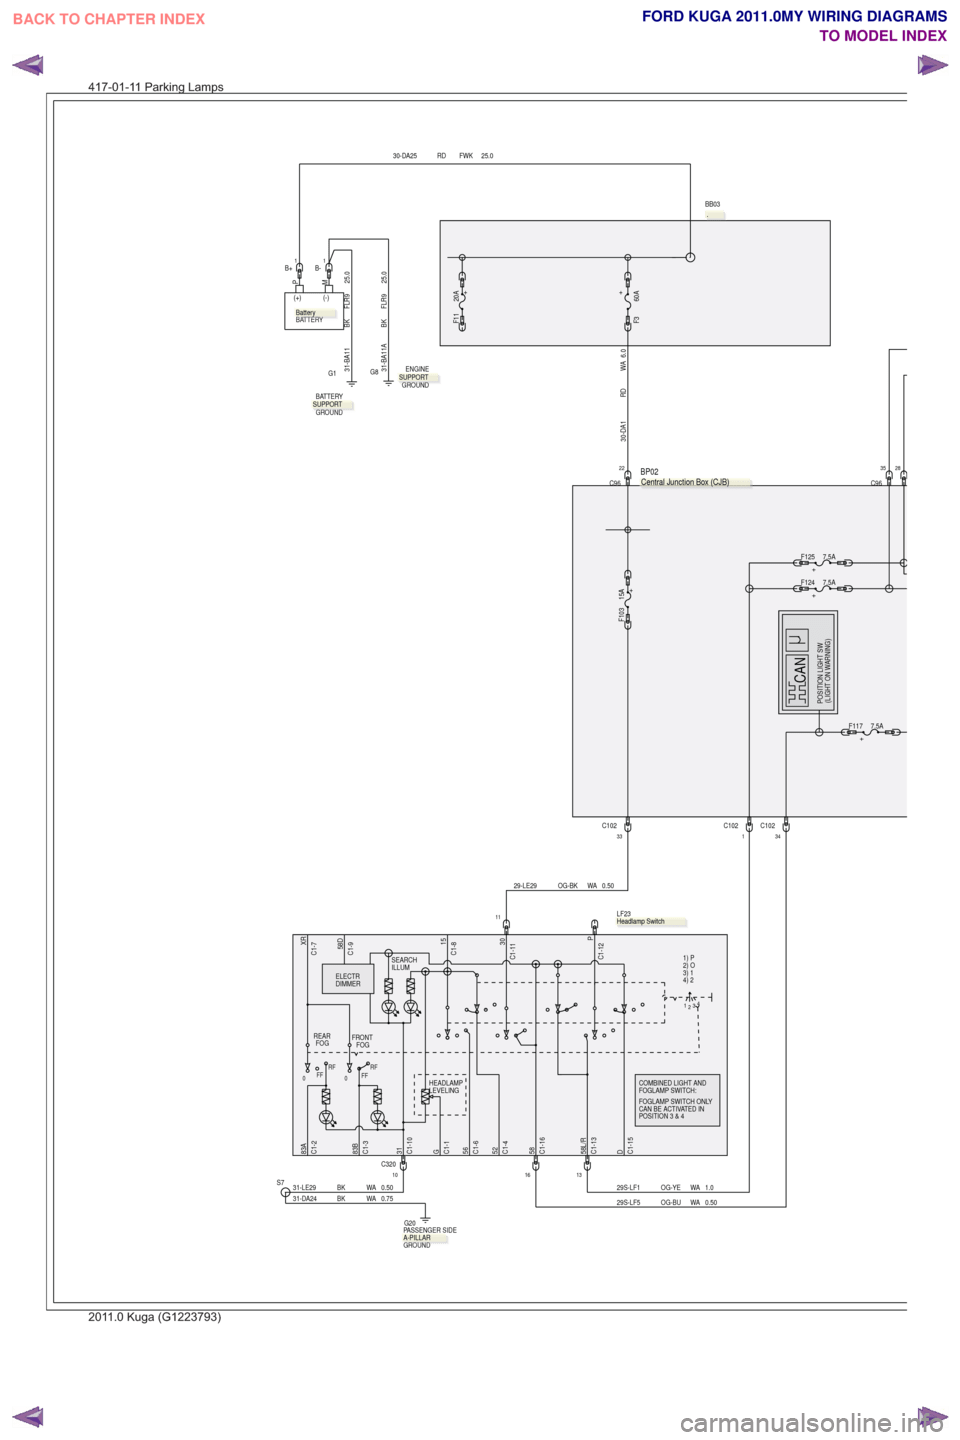 Ford Ignition Switch Wiring Diagram Carsut Review Ebooks